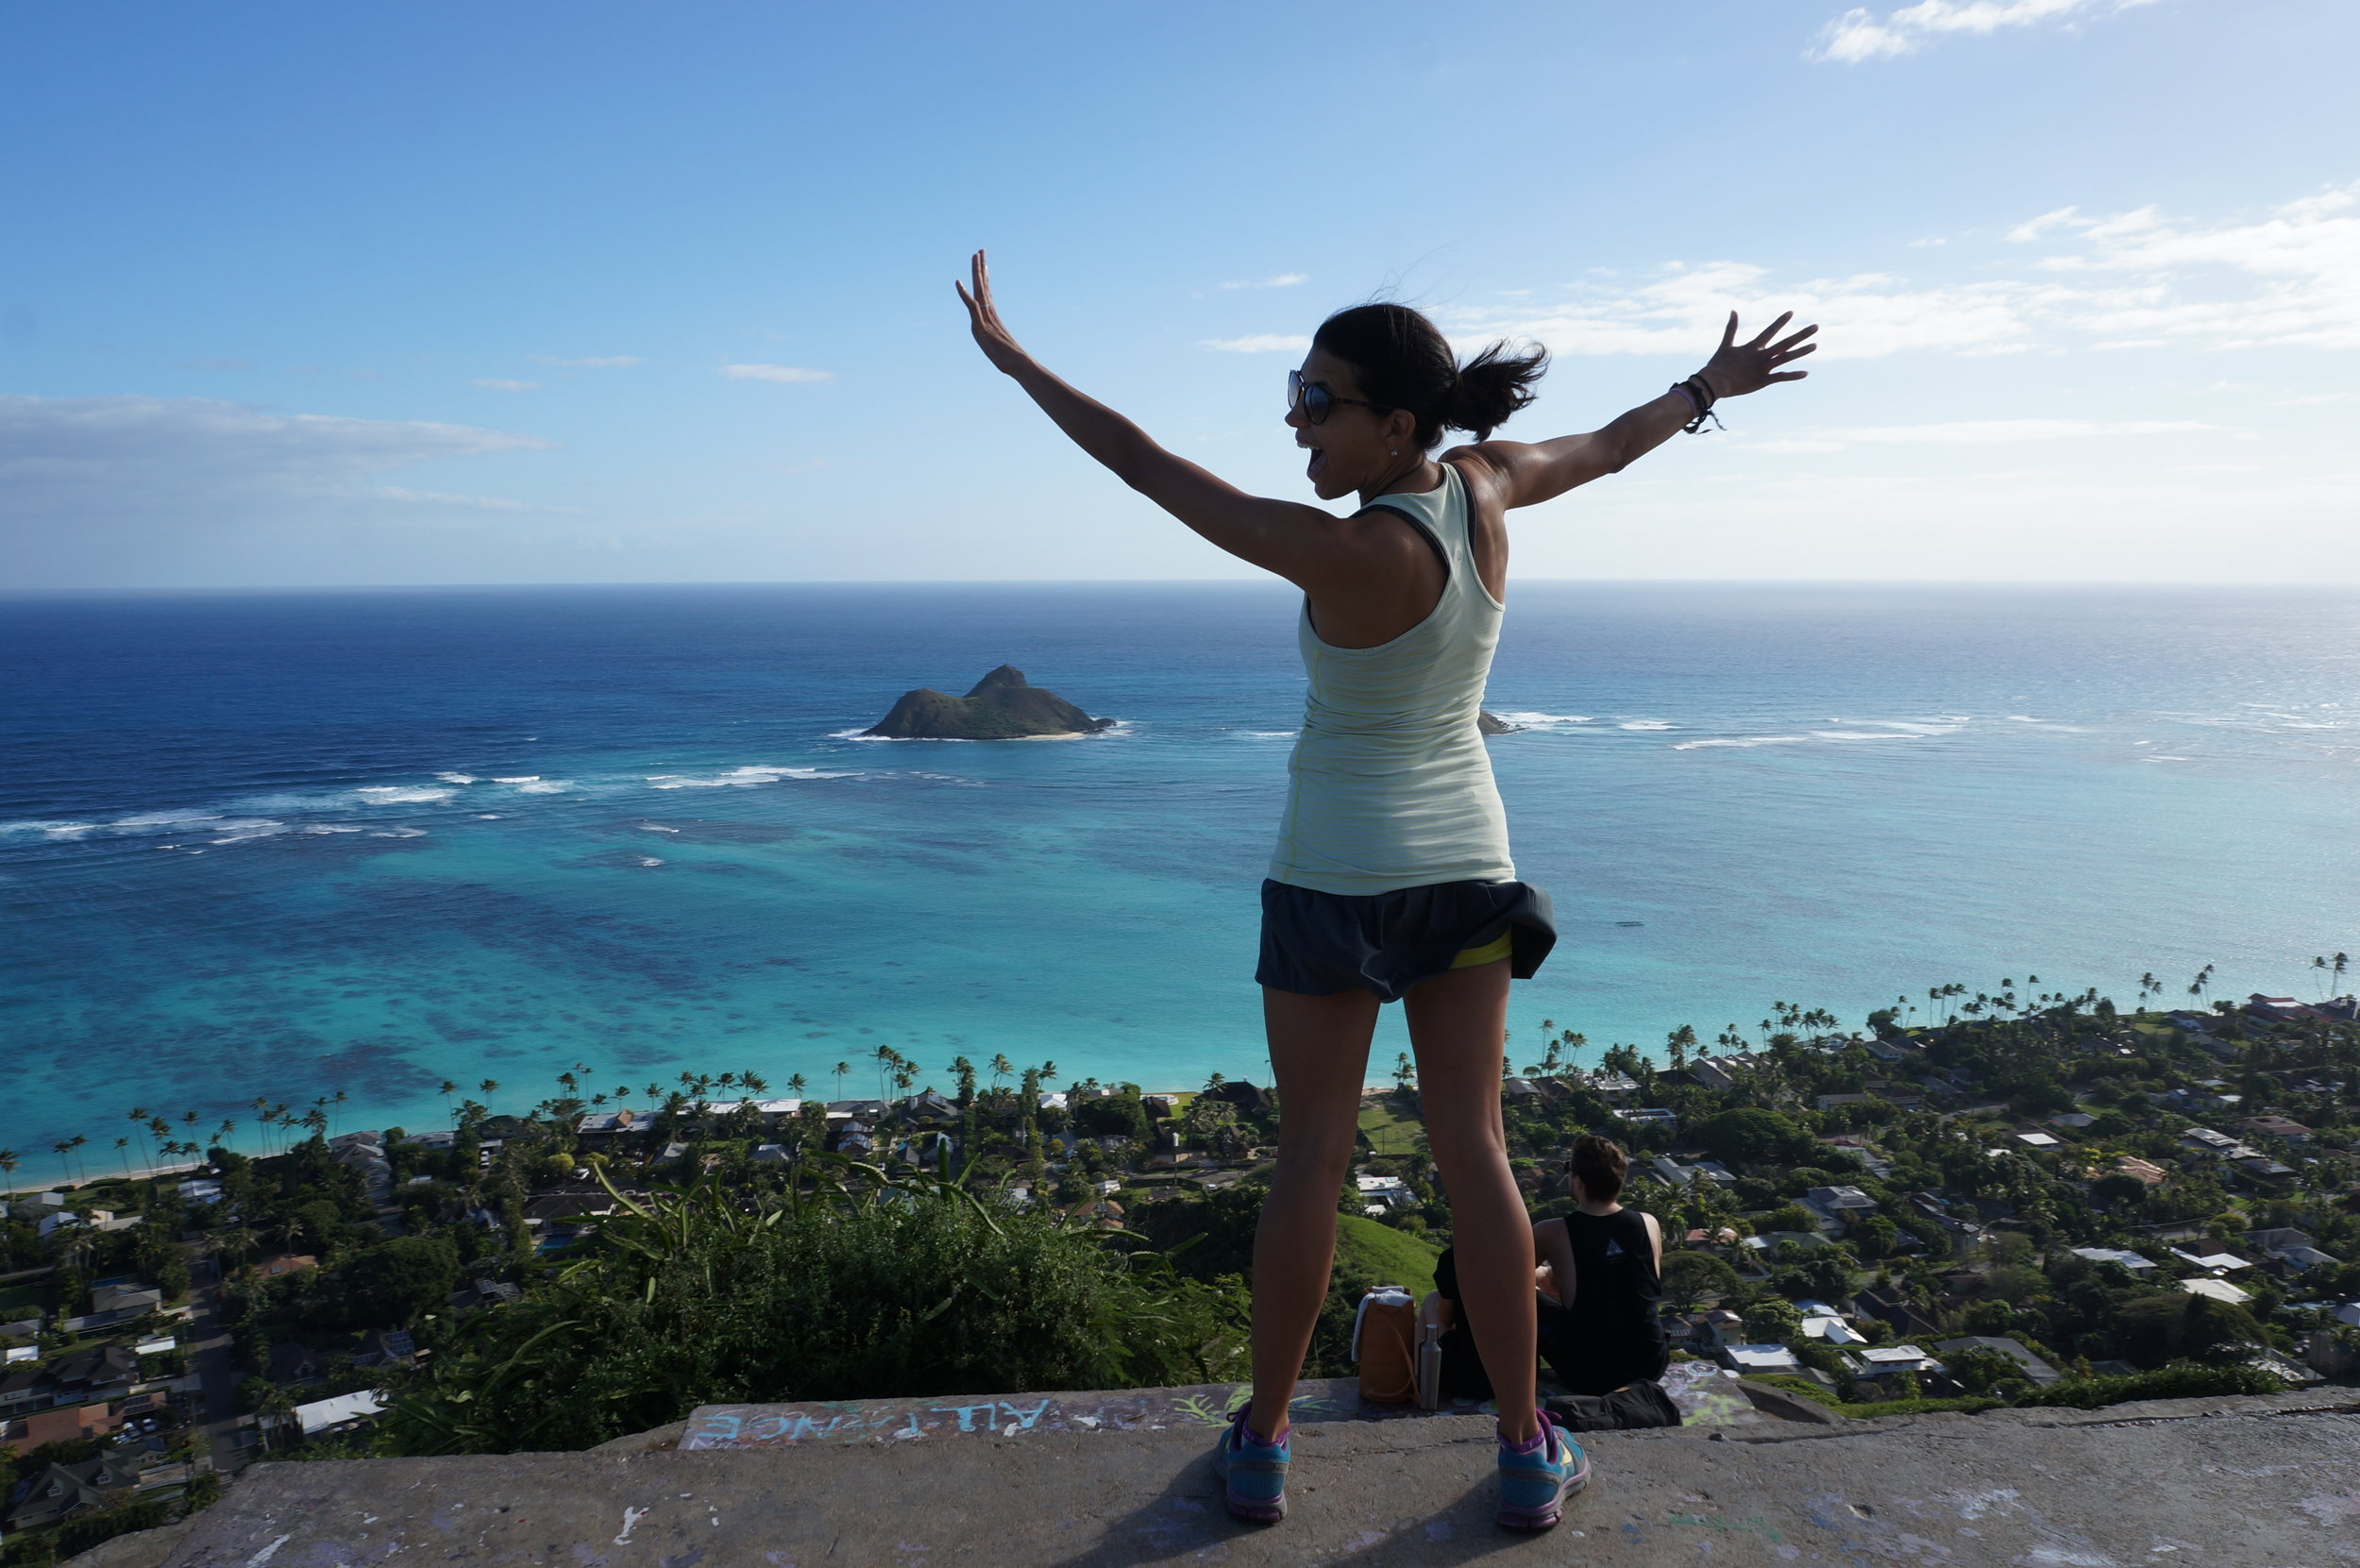 The insane views from Pillbox Hike, overlooking Lanikai Beach.